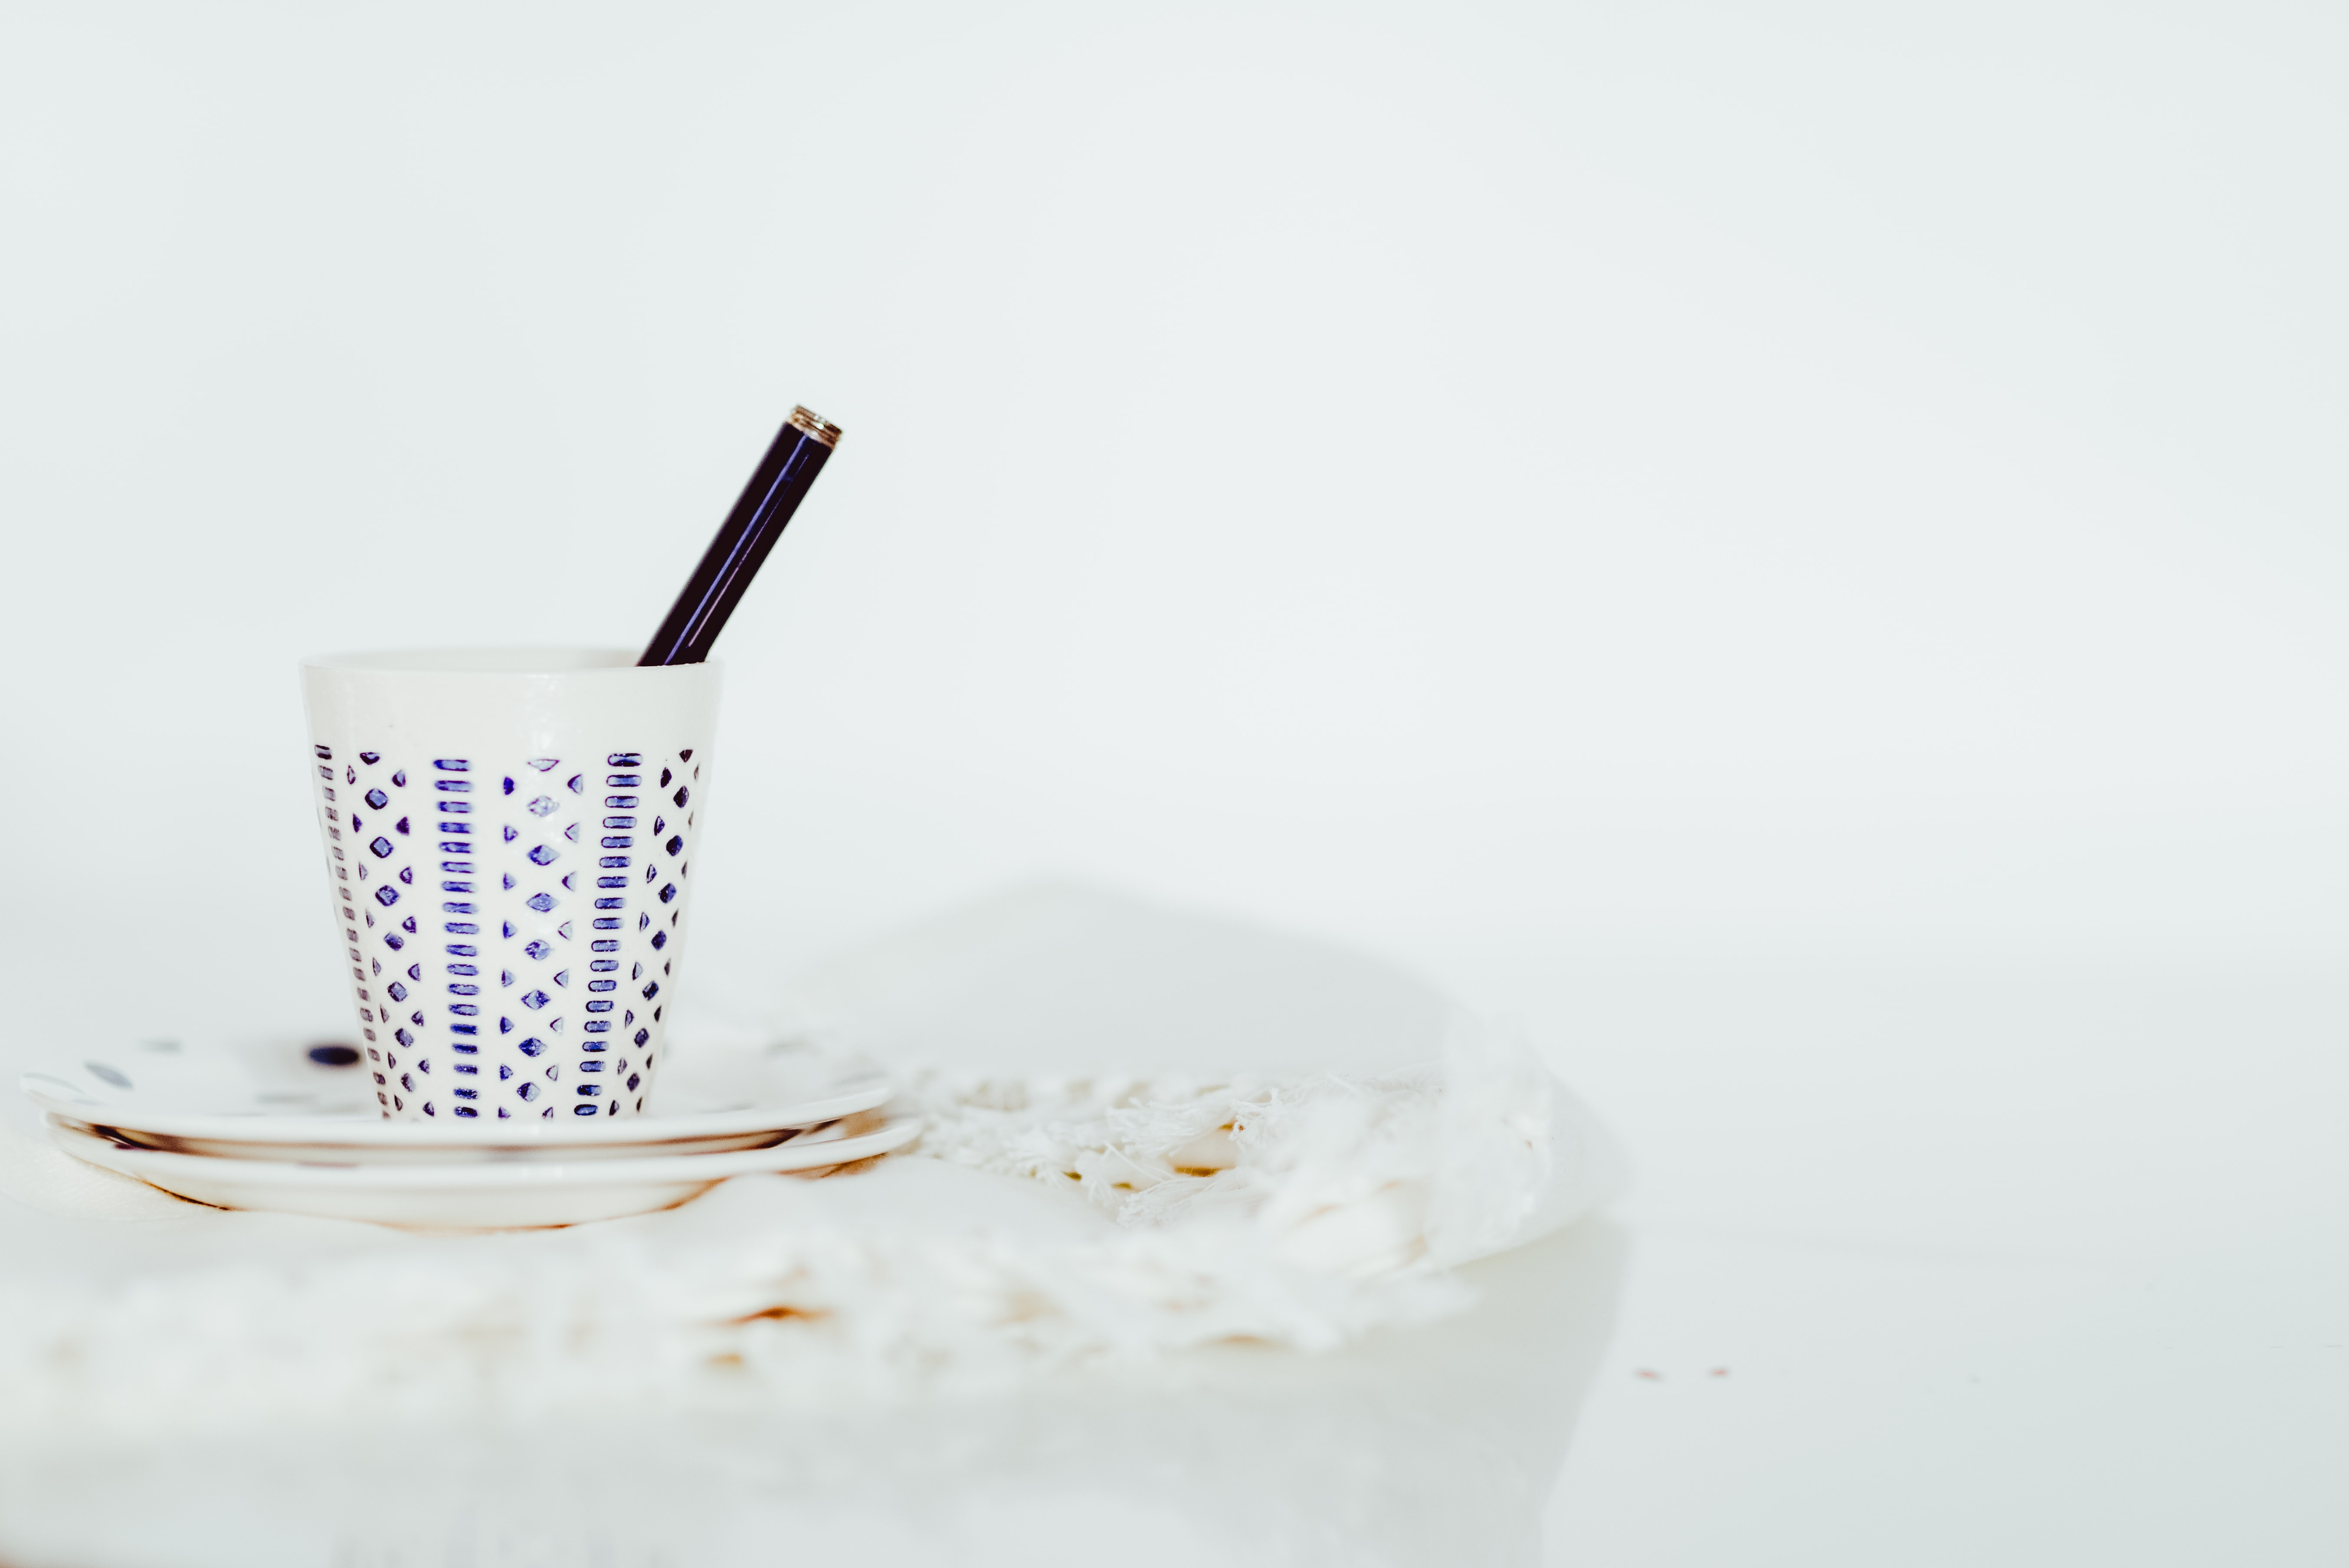 white cup with pen on white panel